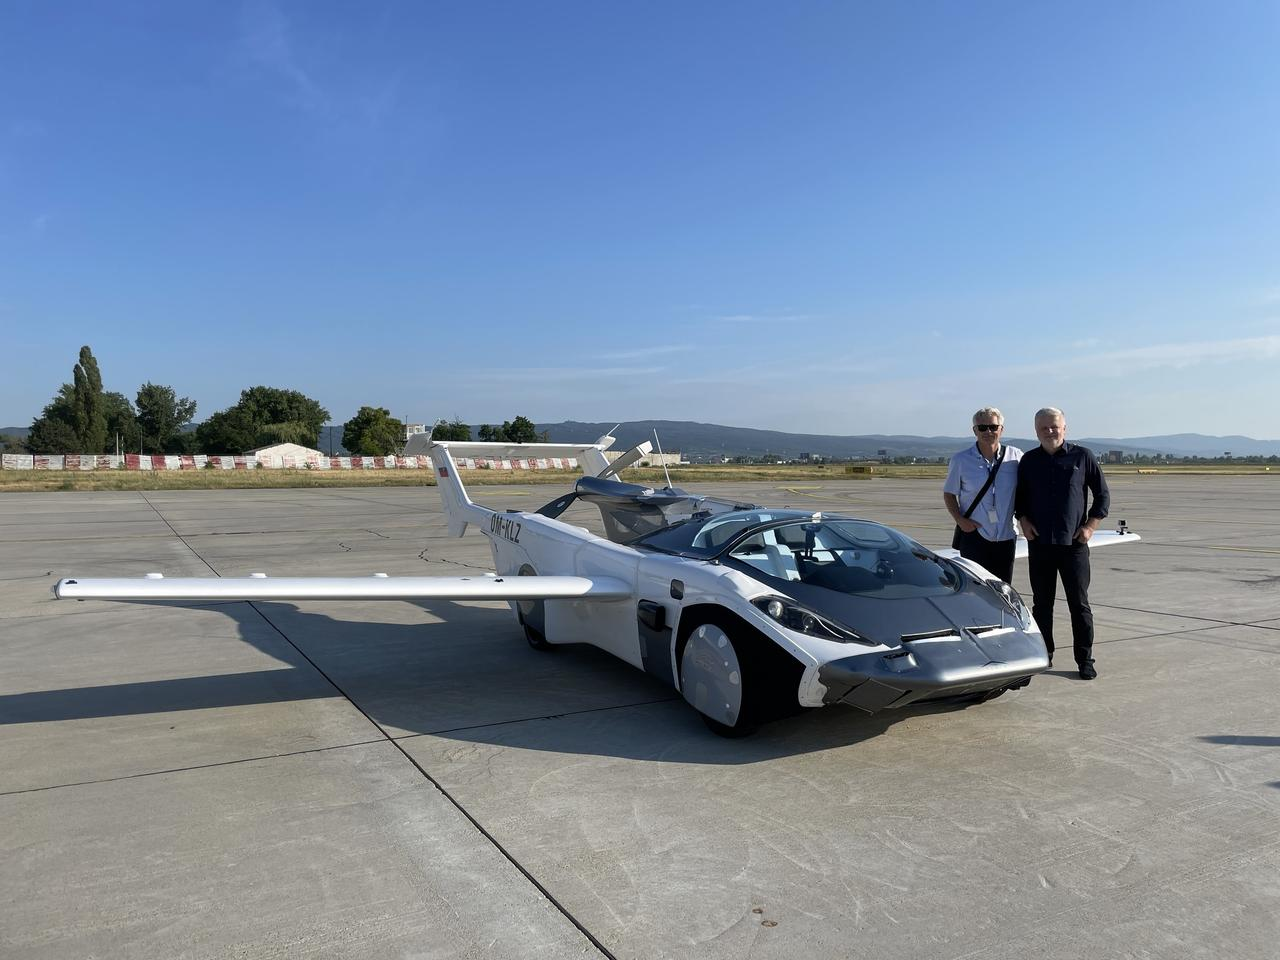 Klein Vision's Anton Zajac (left) and Professor Stefan Klein (right) with the transforming AirCar prototype